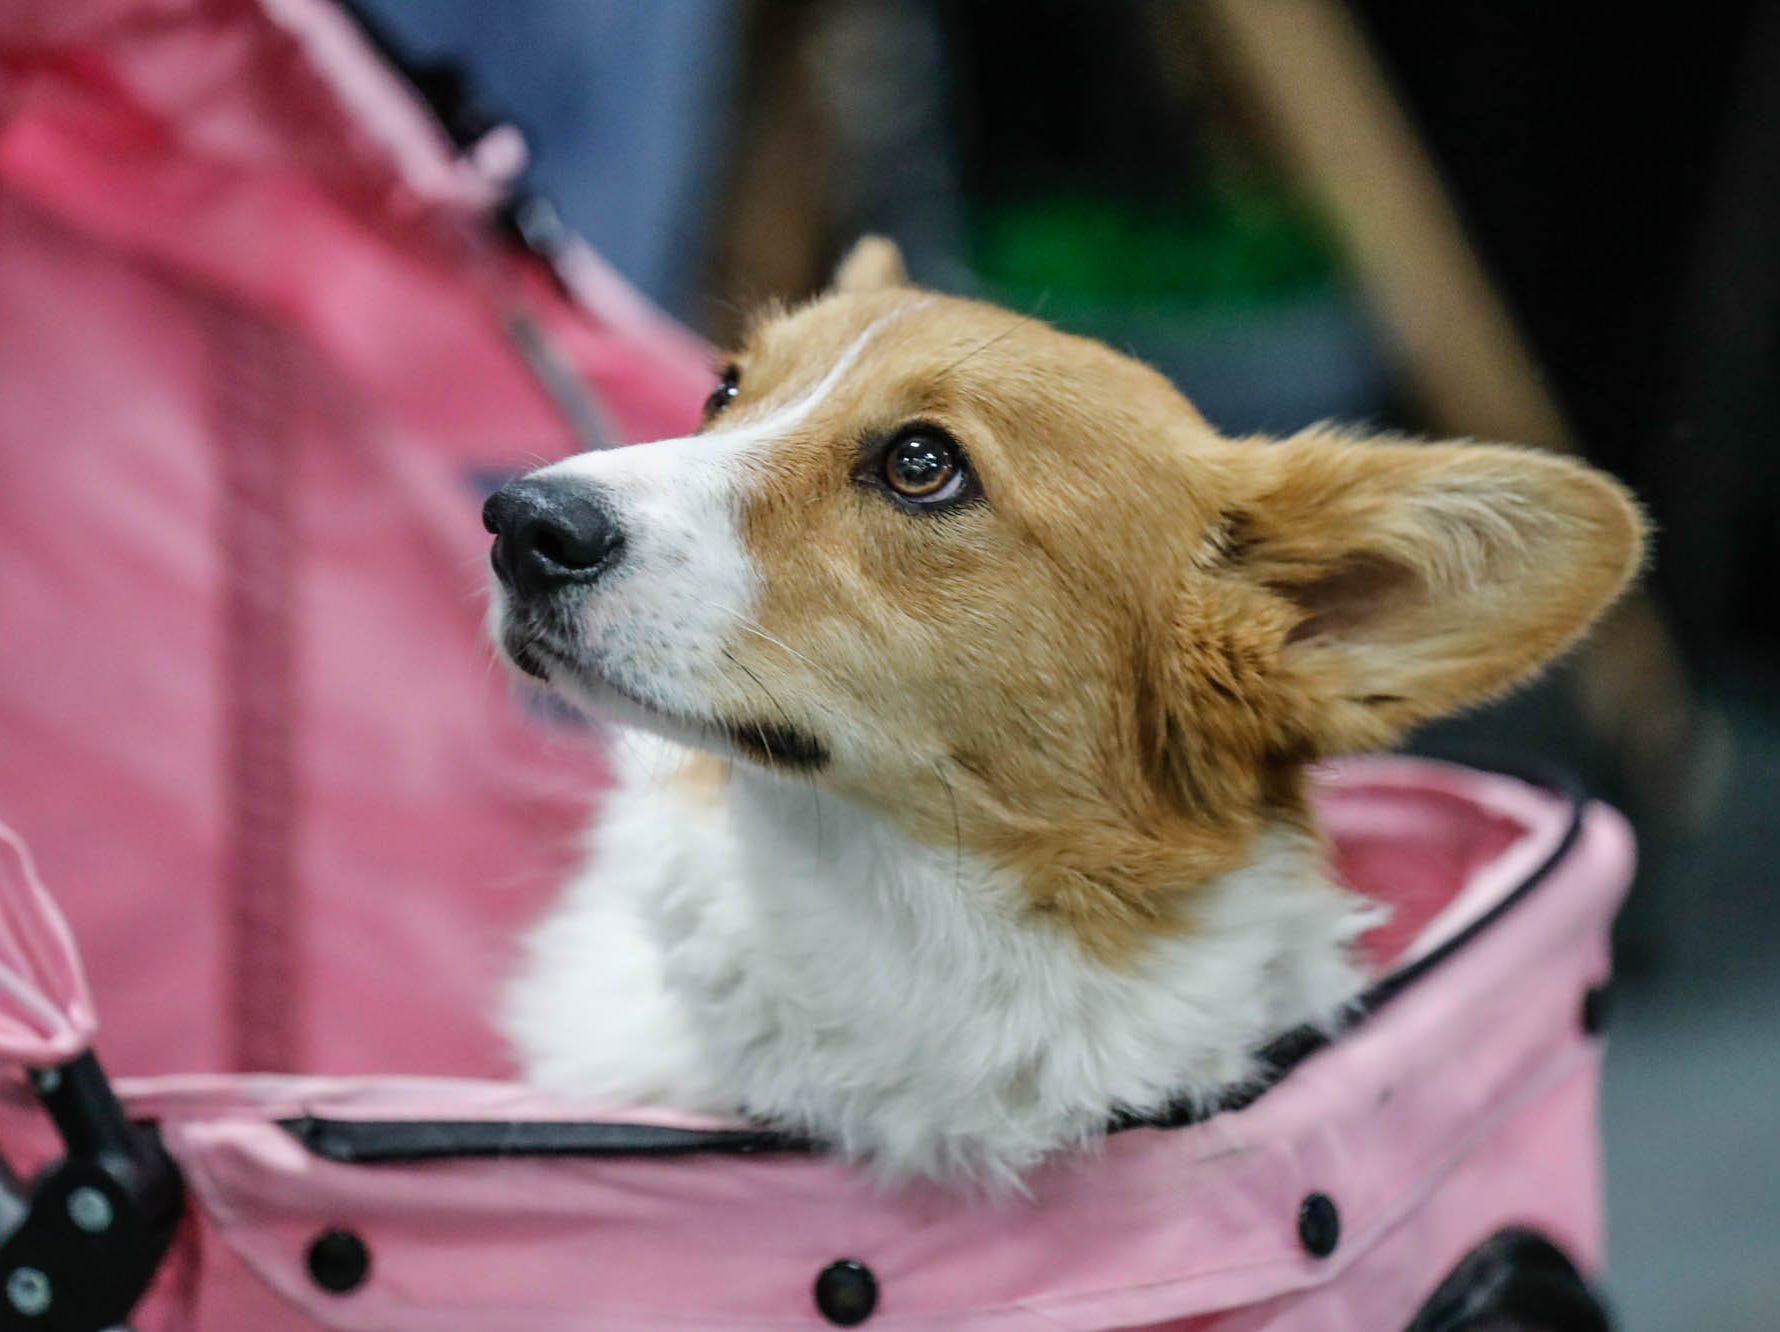 Griffin tours the Great Indy Pet Expo in a carriage, at the Indiana State Fairgrounds on Sat. Nov. 10, 2018.